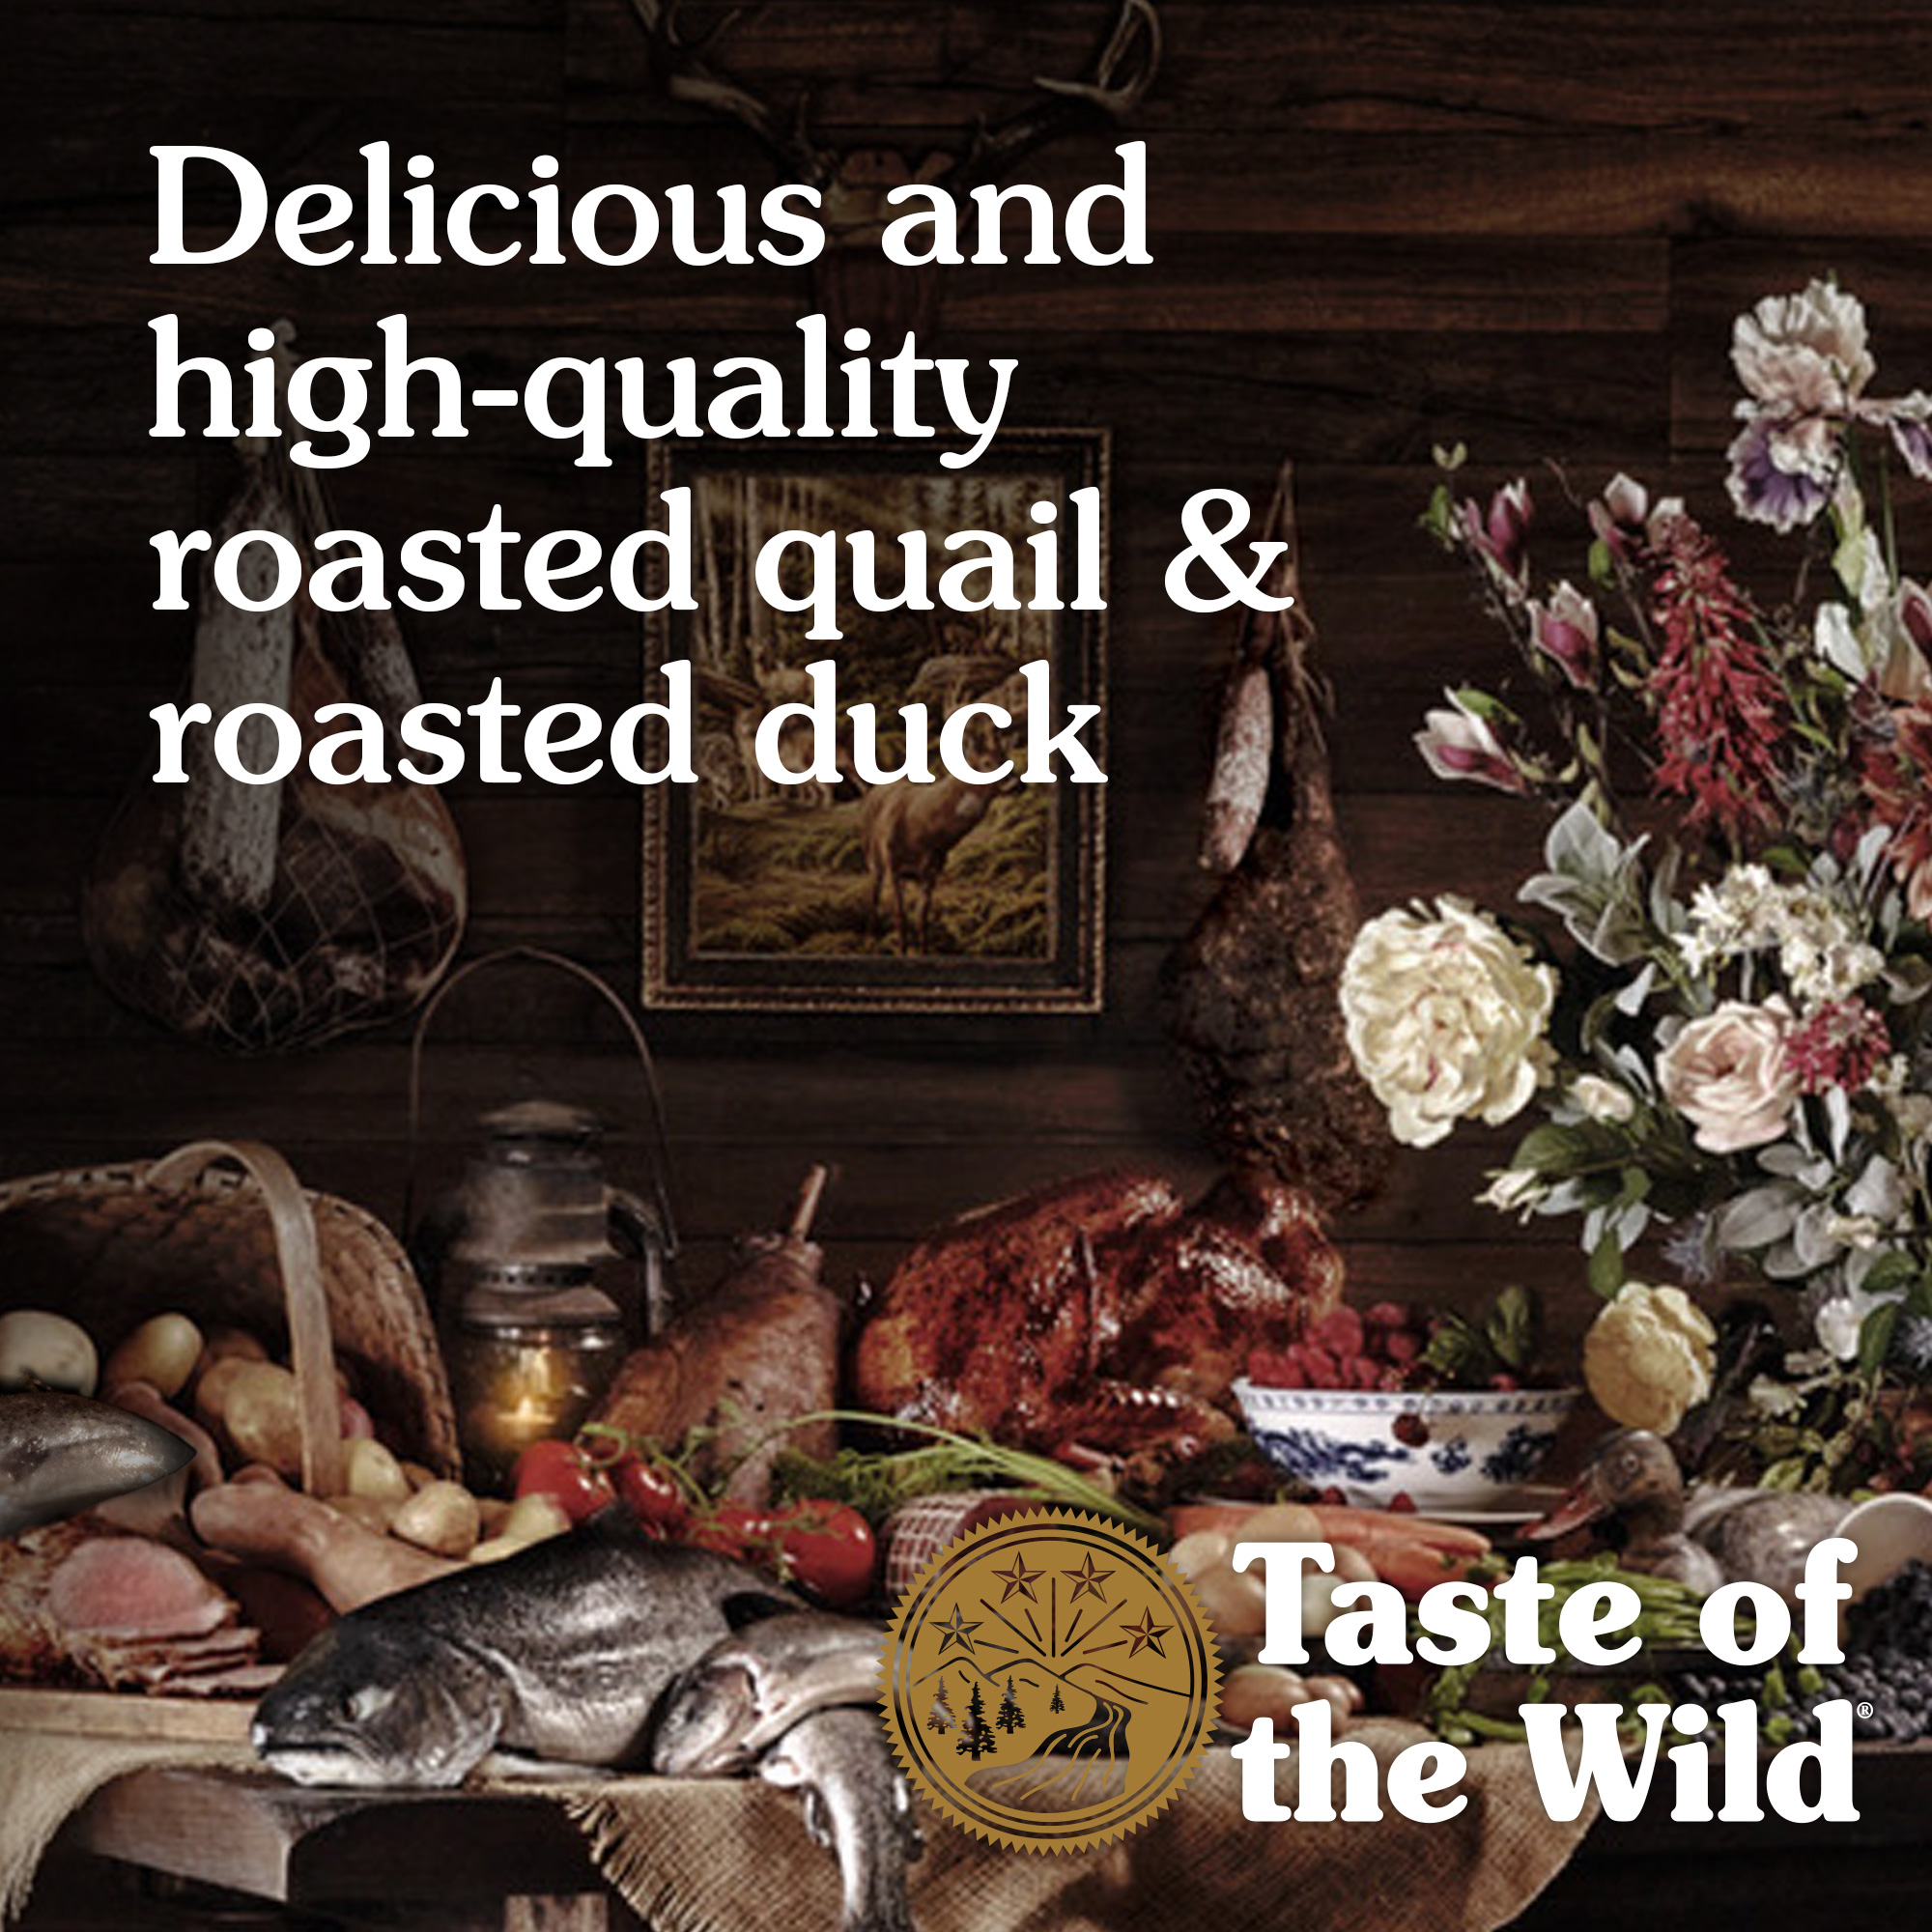 Delicious and high-quality roasted quail & roasted duck